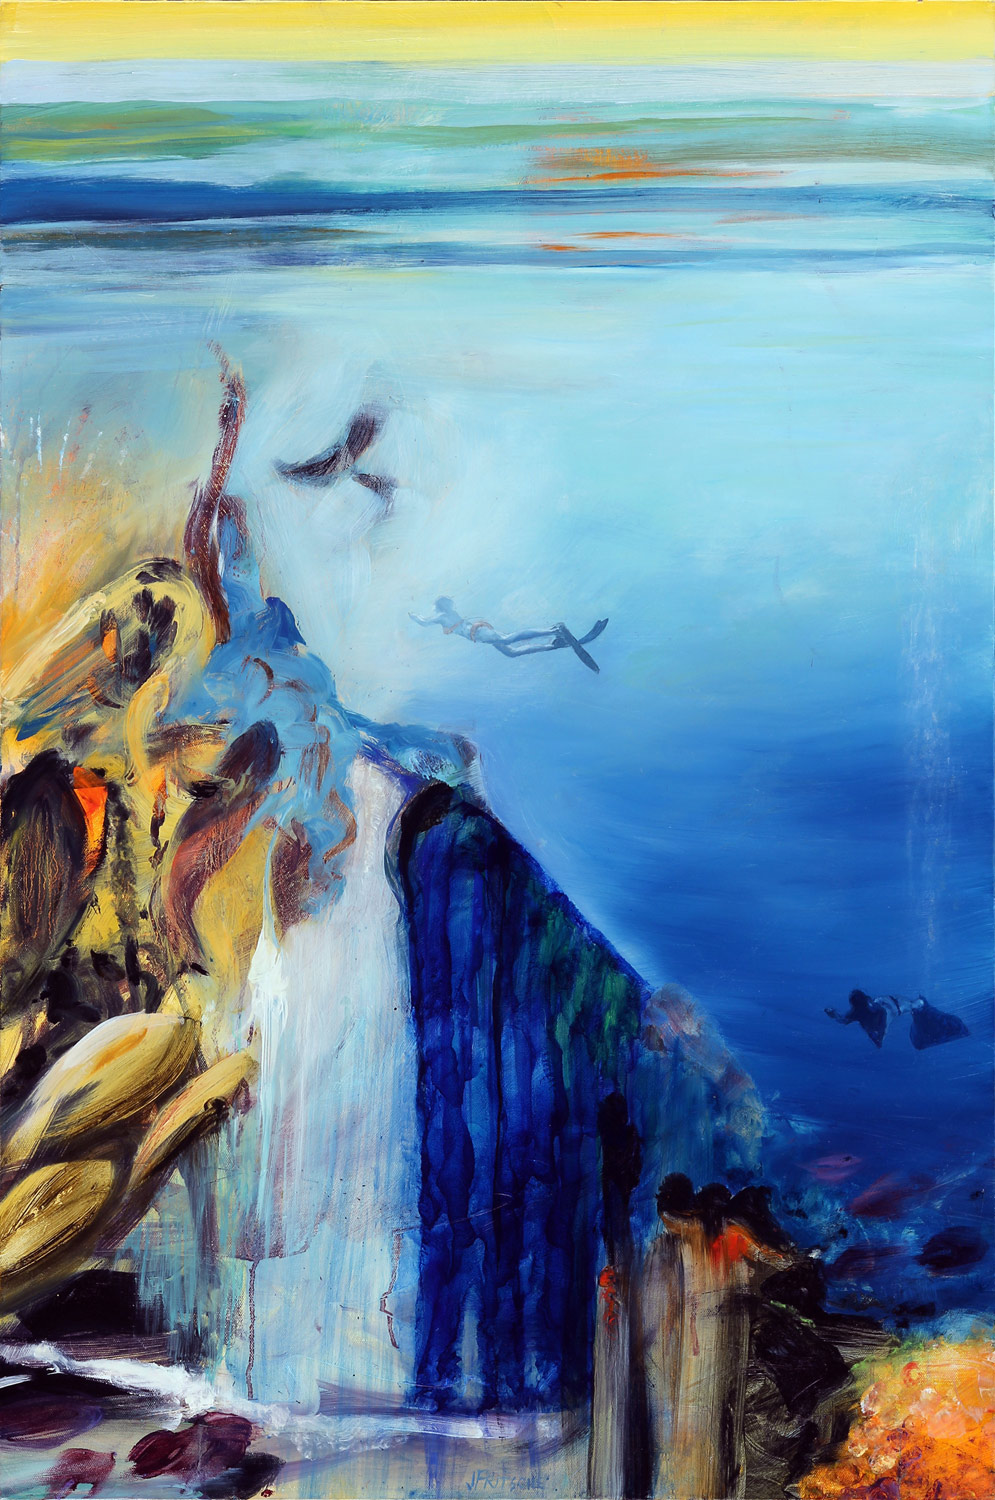 """Voyage to Turtle Station from the Series: Kiss the Joy as It Flies- Oil on canvas- 36"""" x 24"""" - 2014"""